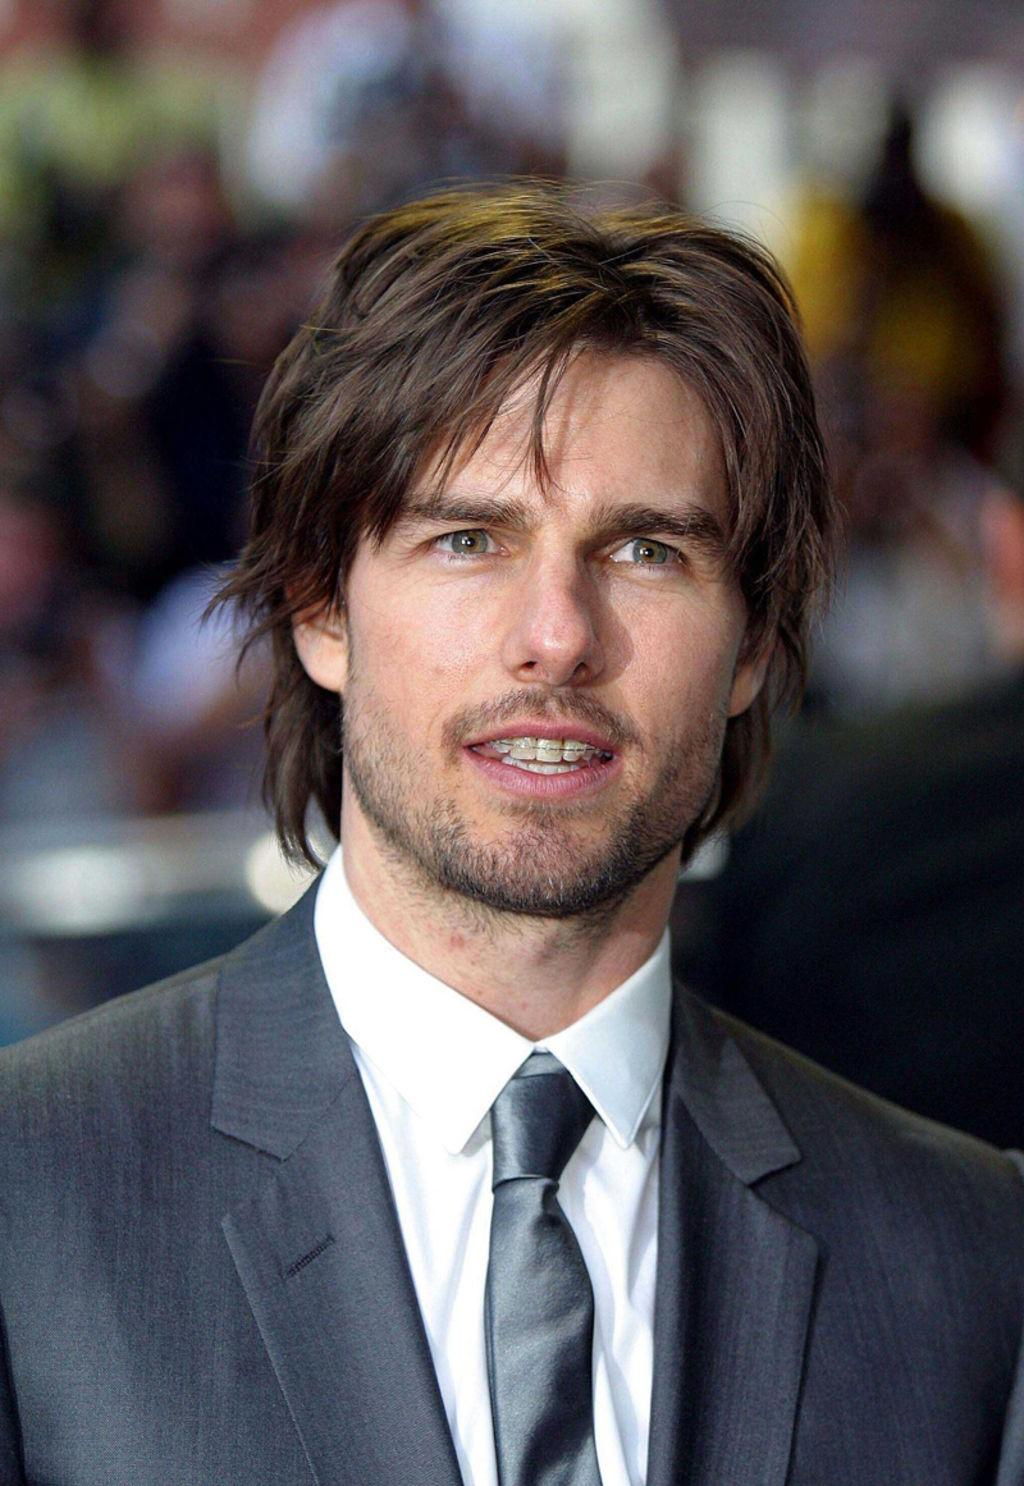 Tom Cruise Hairstyles - Star Hairstyles